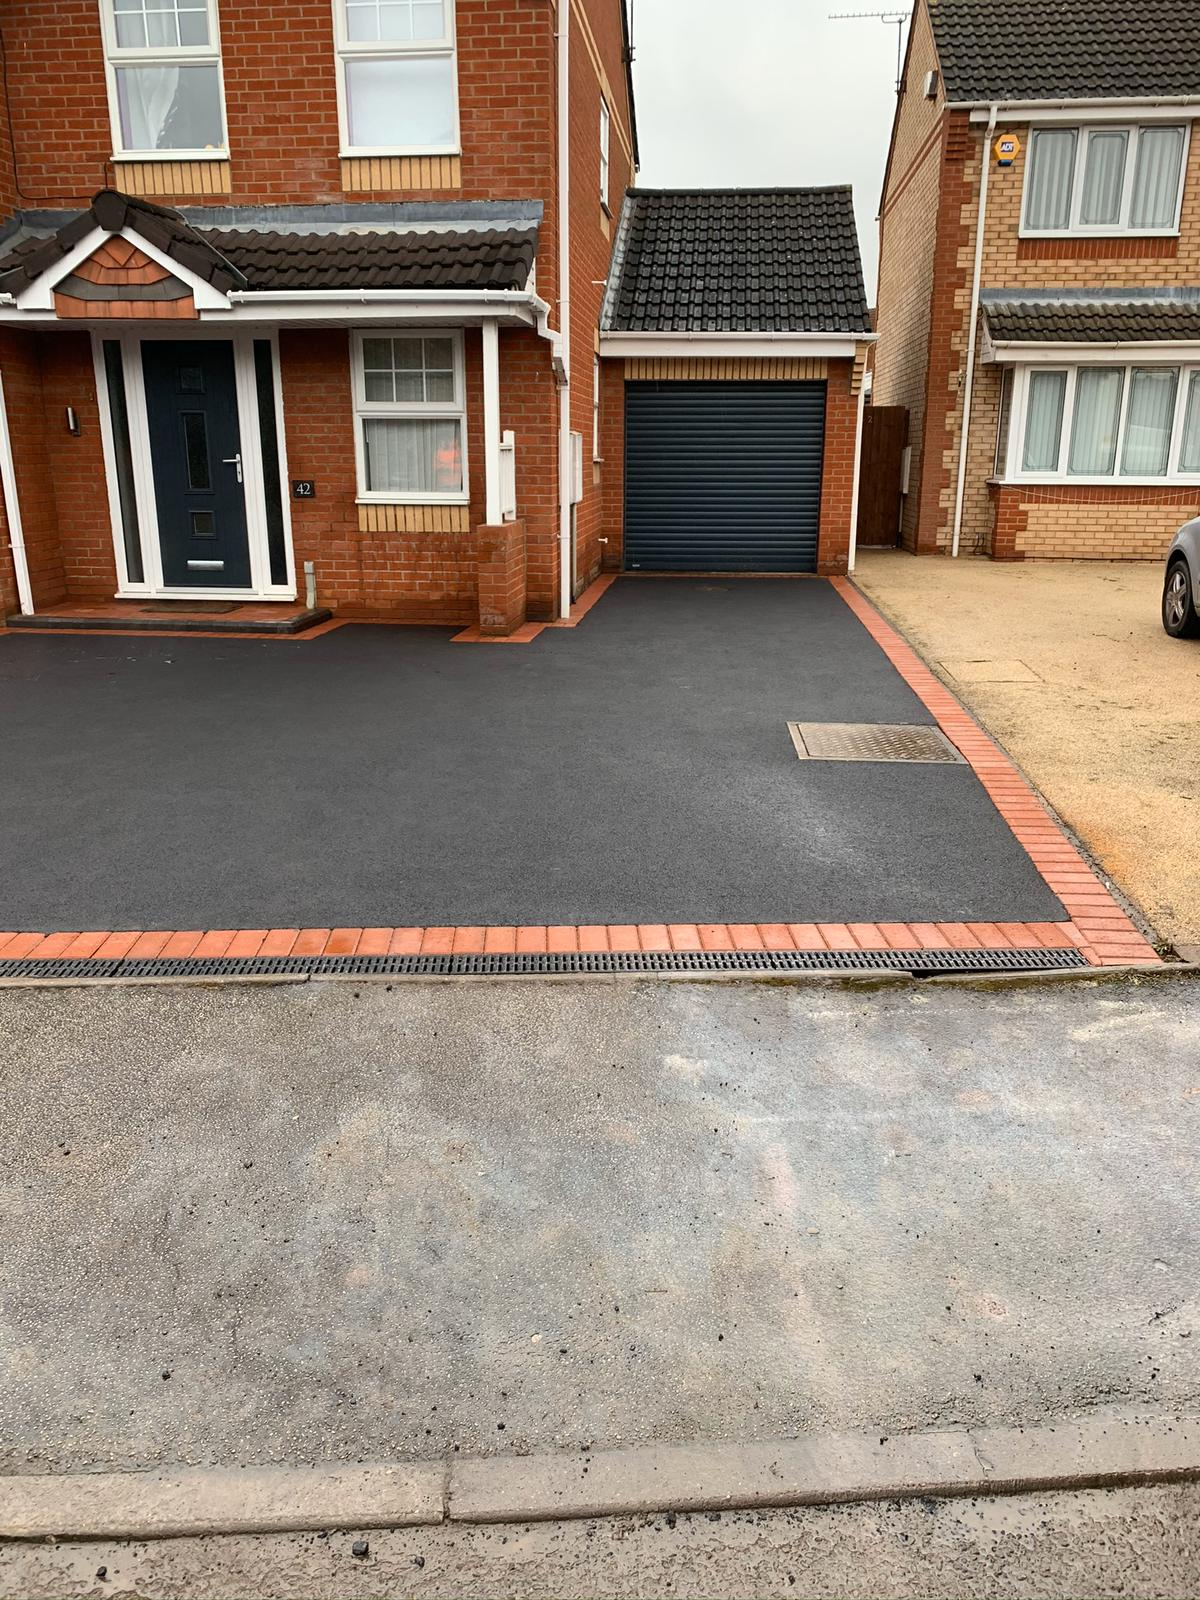 Driveway project completed in coventry including sealed edges and new drainage